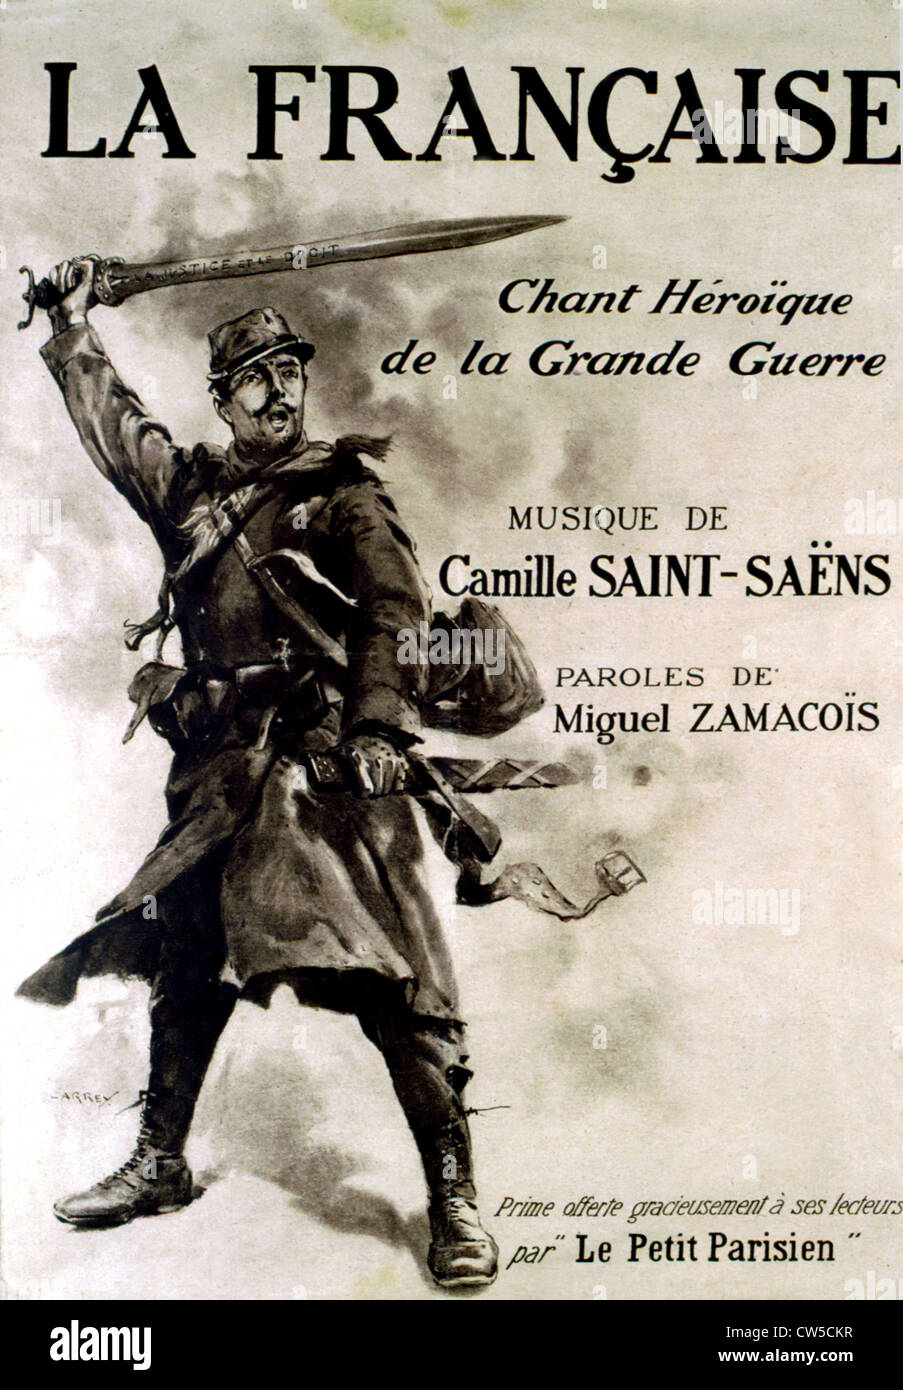 La Française, heroic song of the World War I, Music by Camille Saint-Saëns (Picture: Pierre Pitrou) - Stock Image